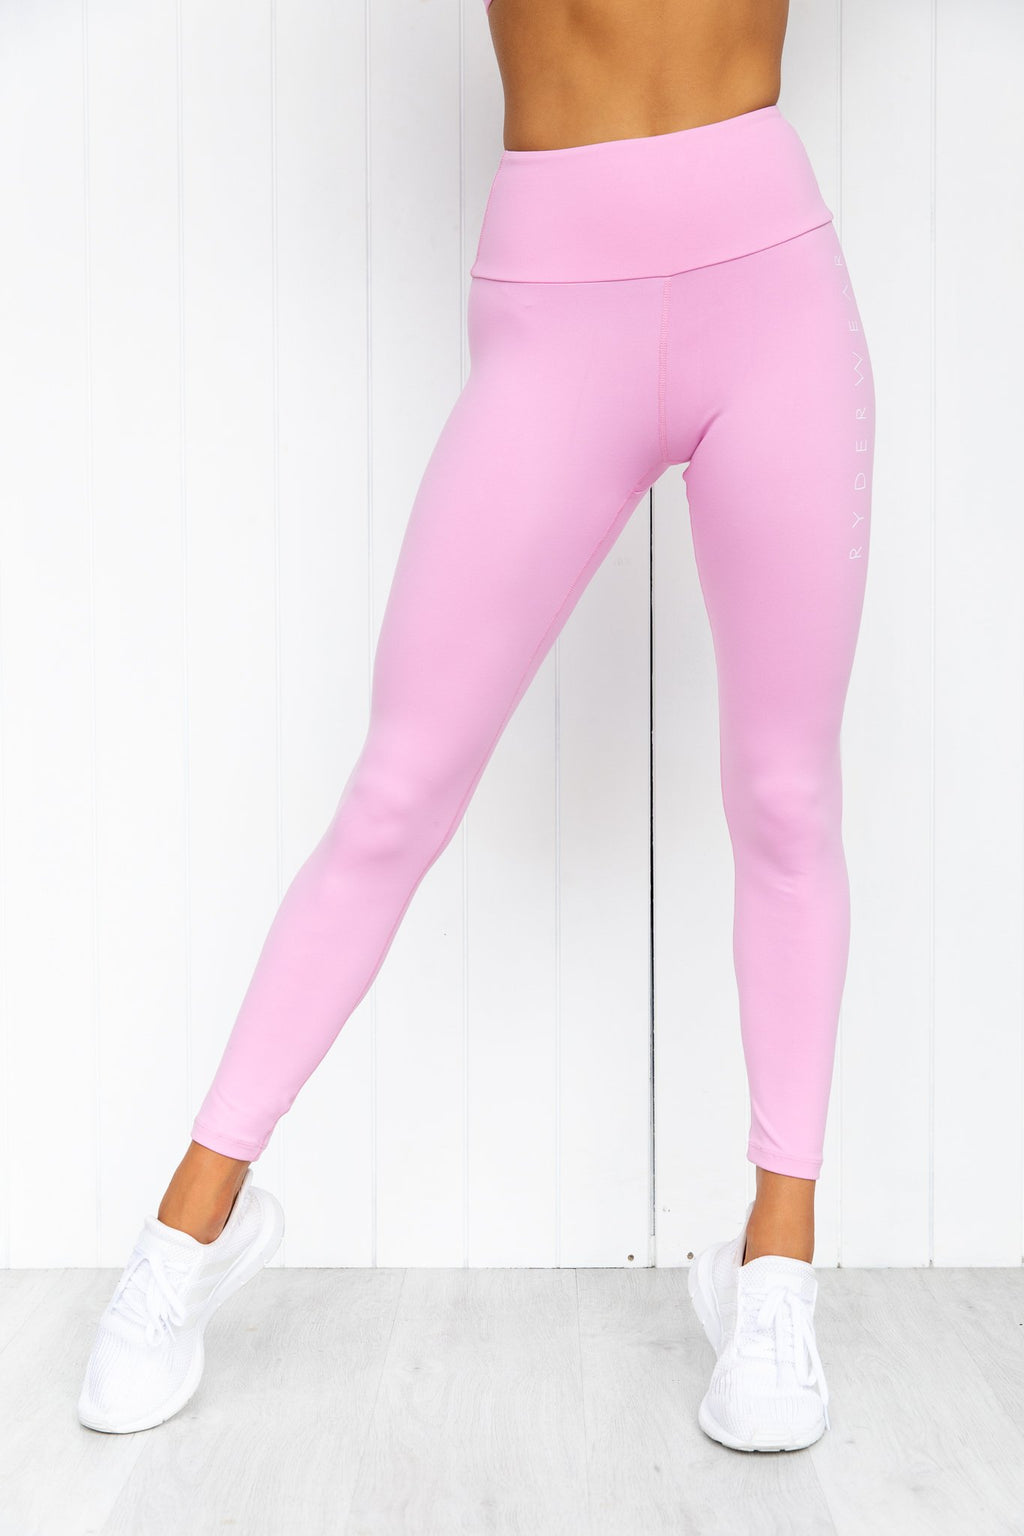 Staples Scrunch Bum Leggings - Pink - PURE DASH